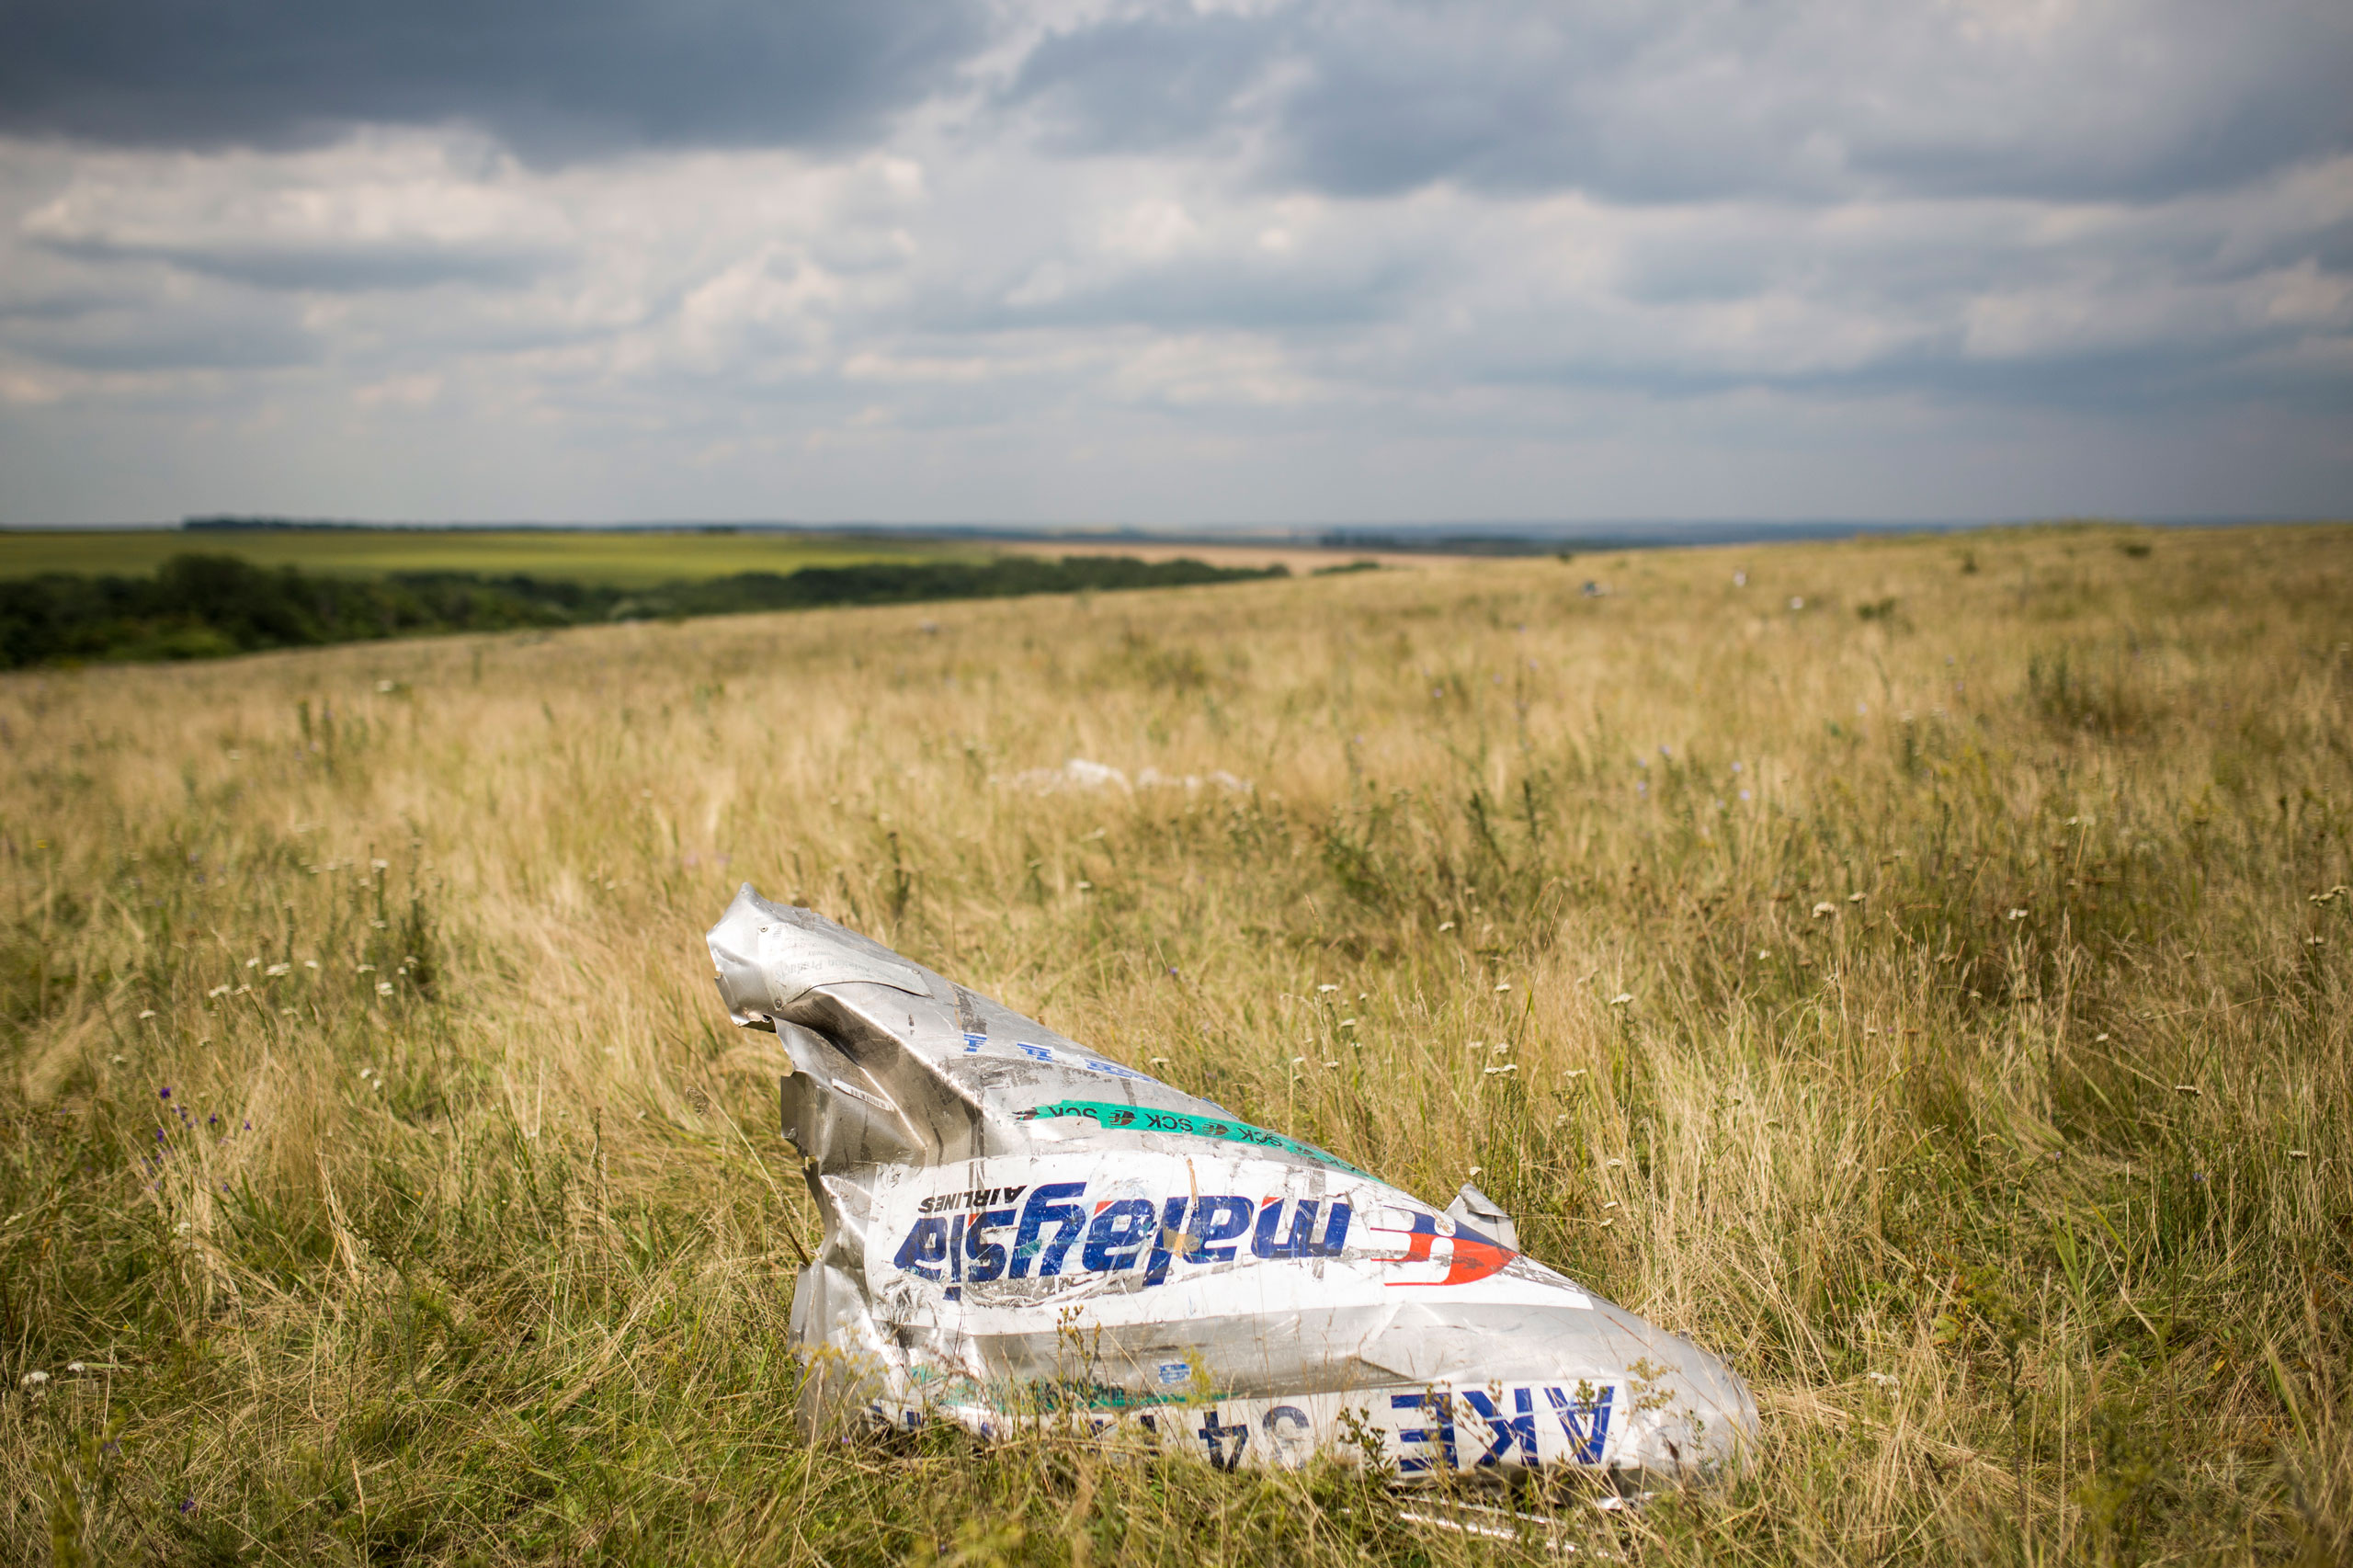 Wreckage from Malaysia Airlines flight MH17 lies in a field in Grabovo, Ukraine, on July 22, 2014 .